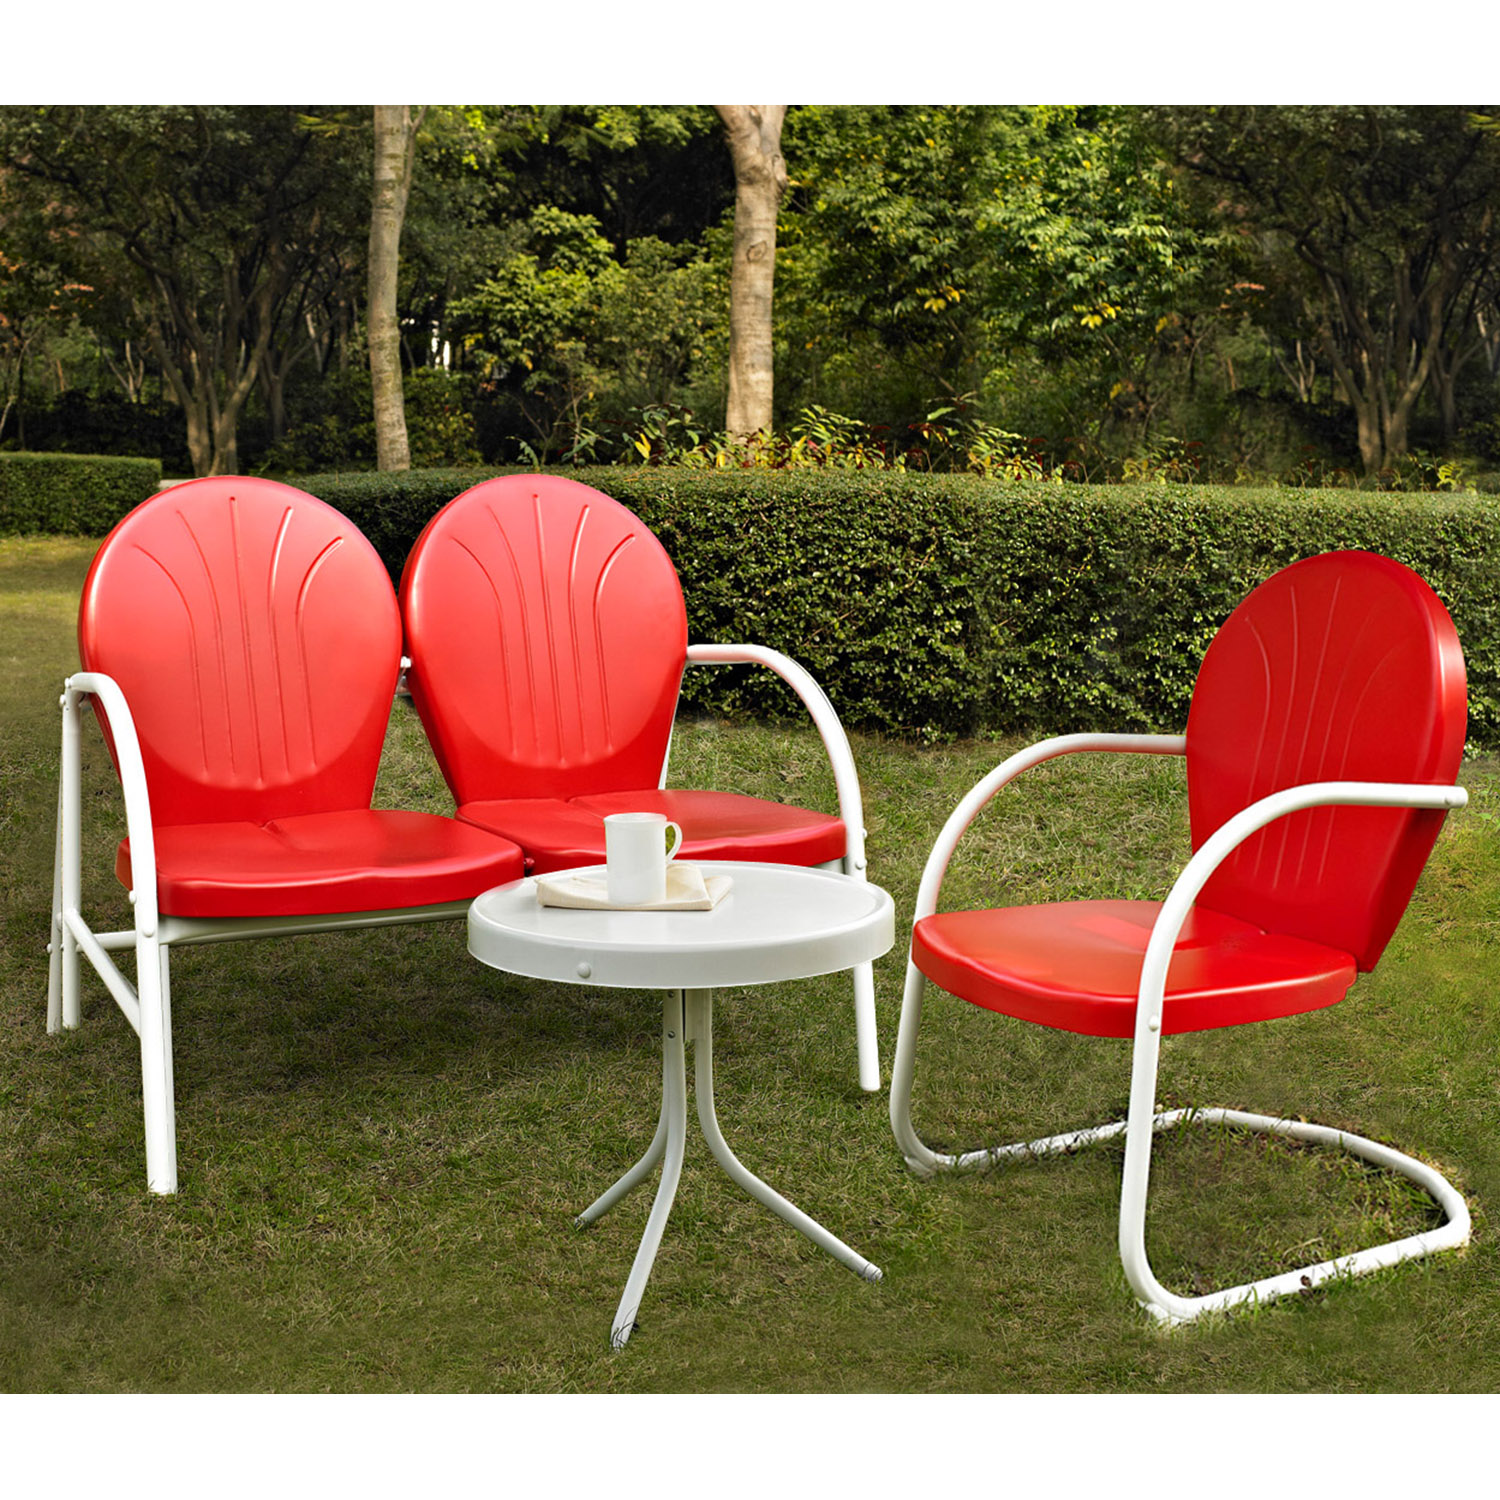 Griffith 3-Piece Conversation Seating Set - Red Chairs and Loveseat - CROS-KO10003RE